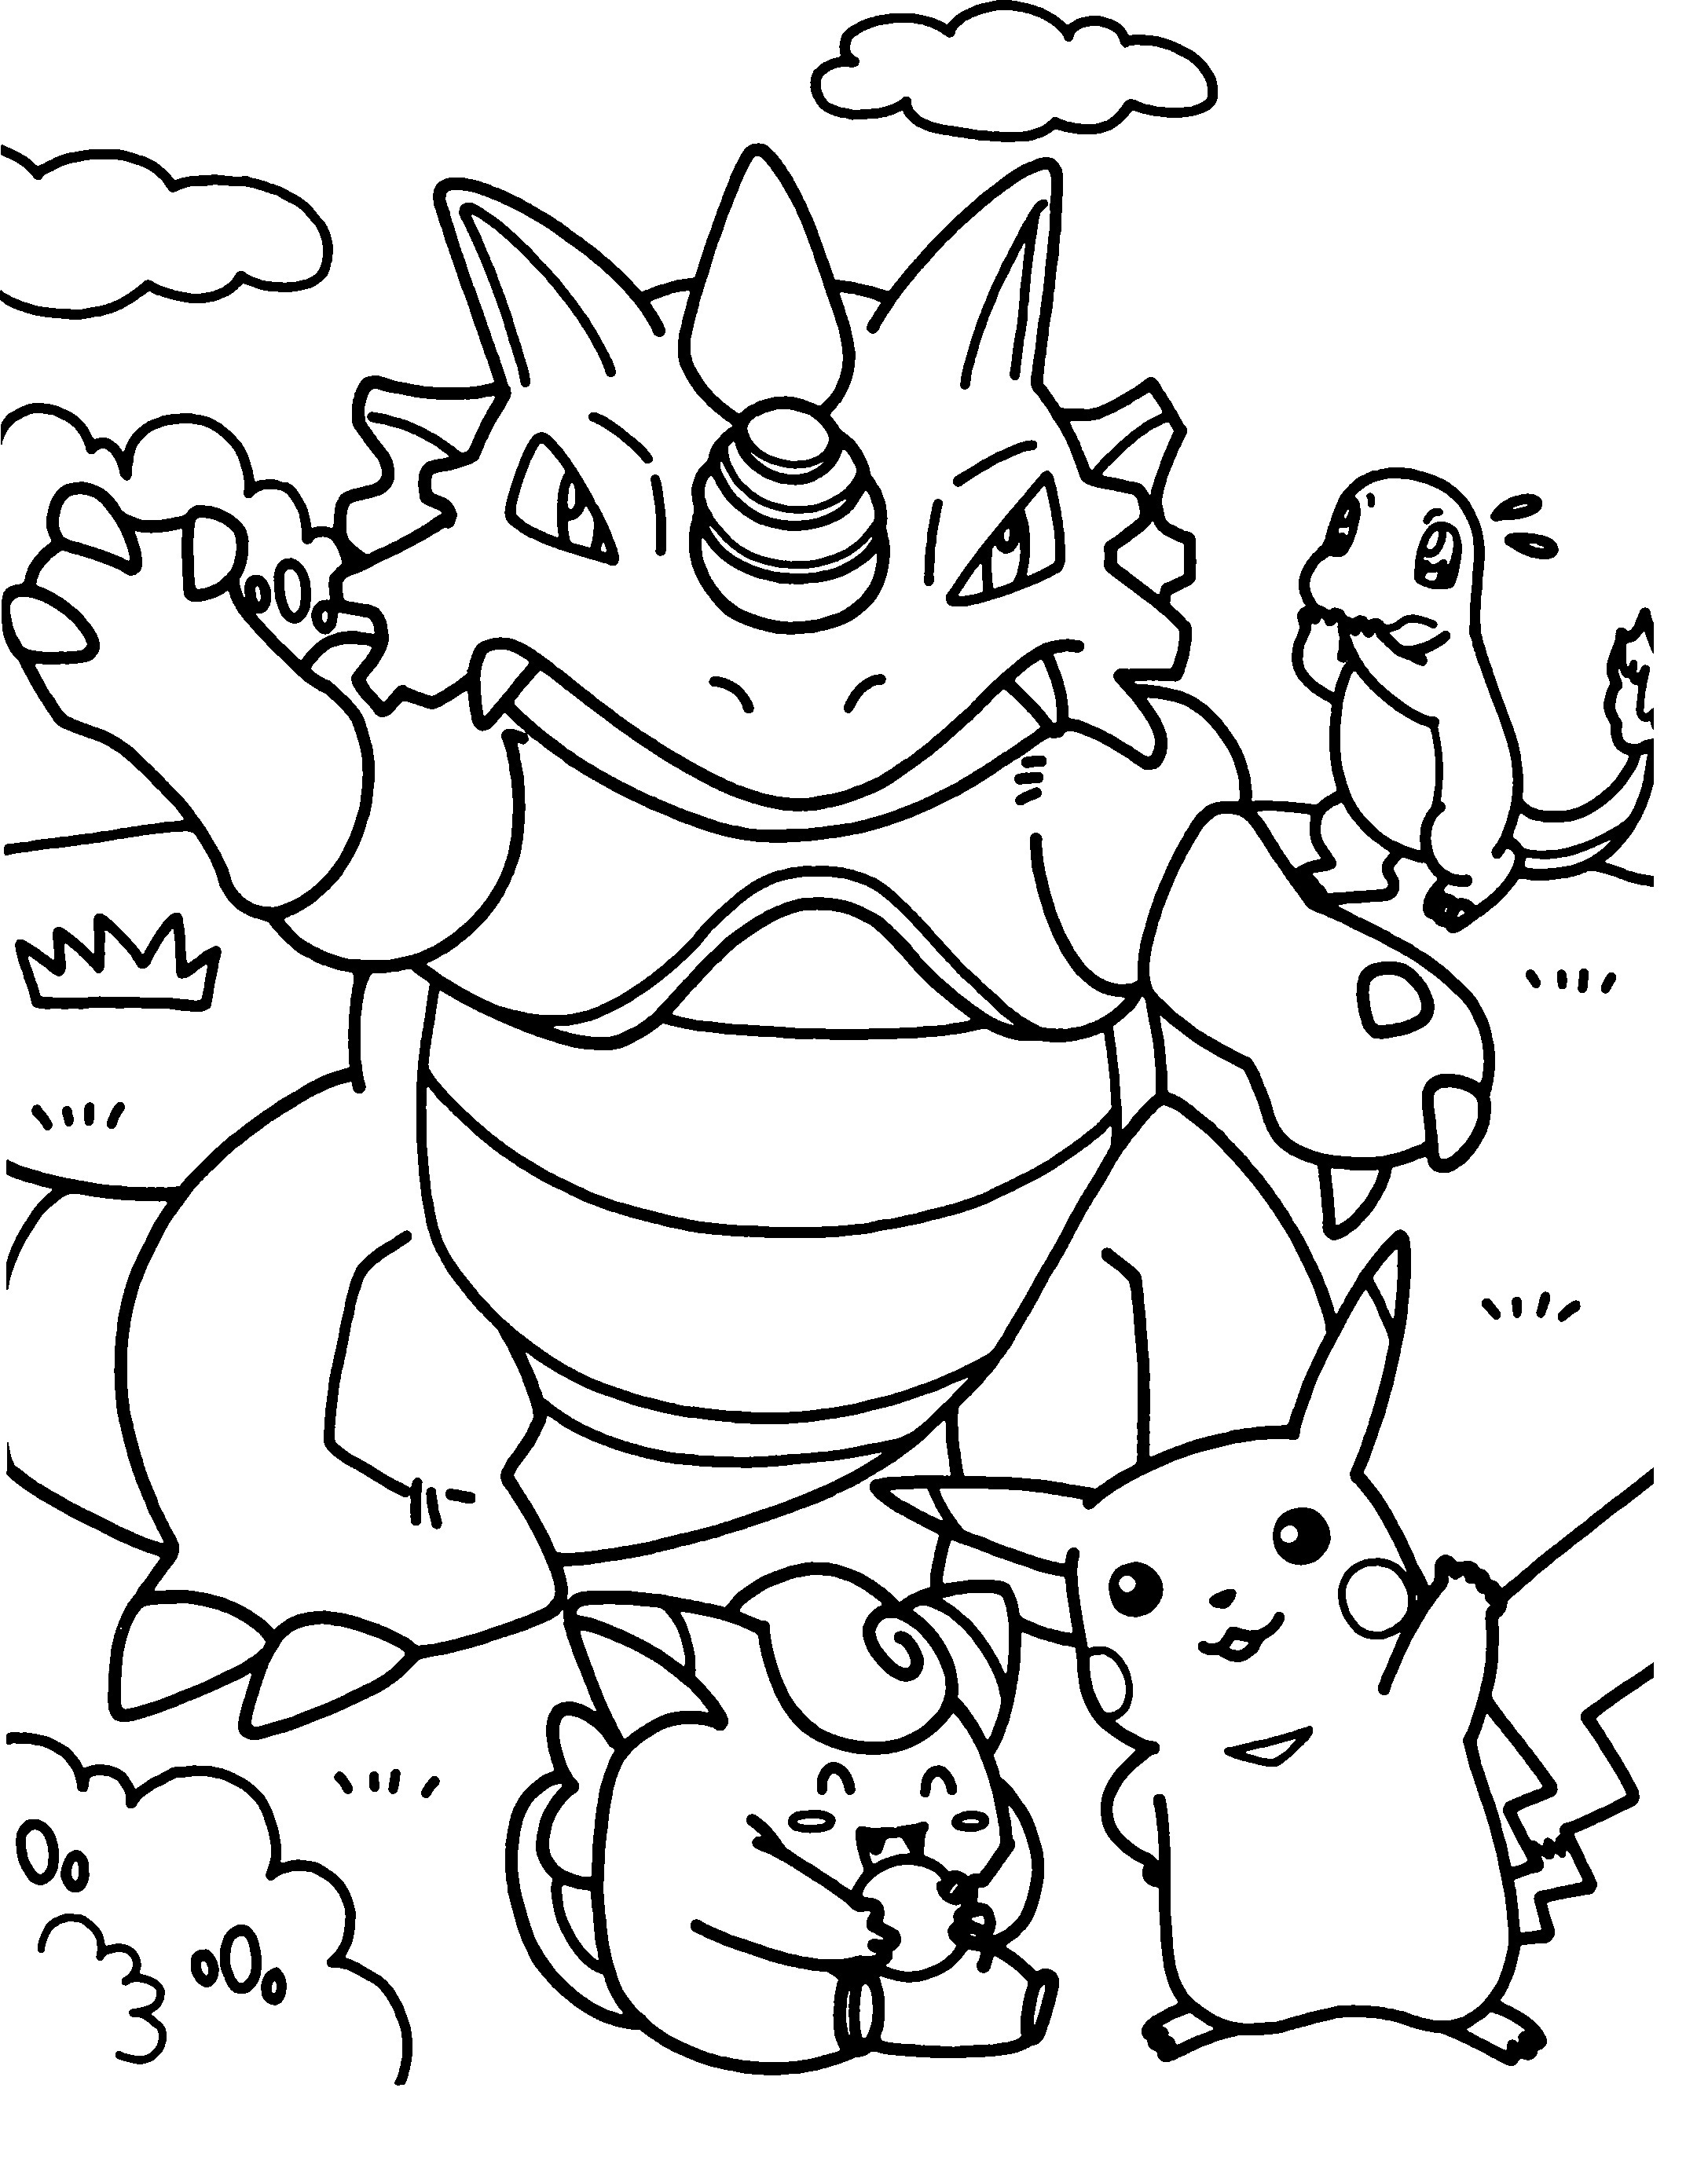 pokemon coloring sheets printable pokemon coloring pages join your favorite pokemon on an coloring sheets printable pokemon